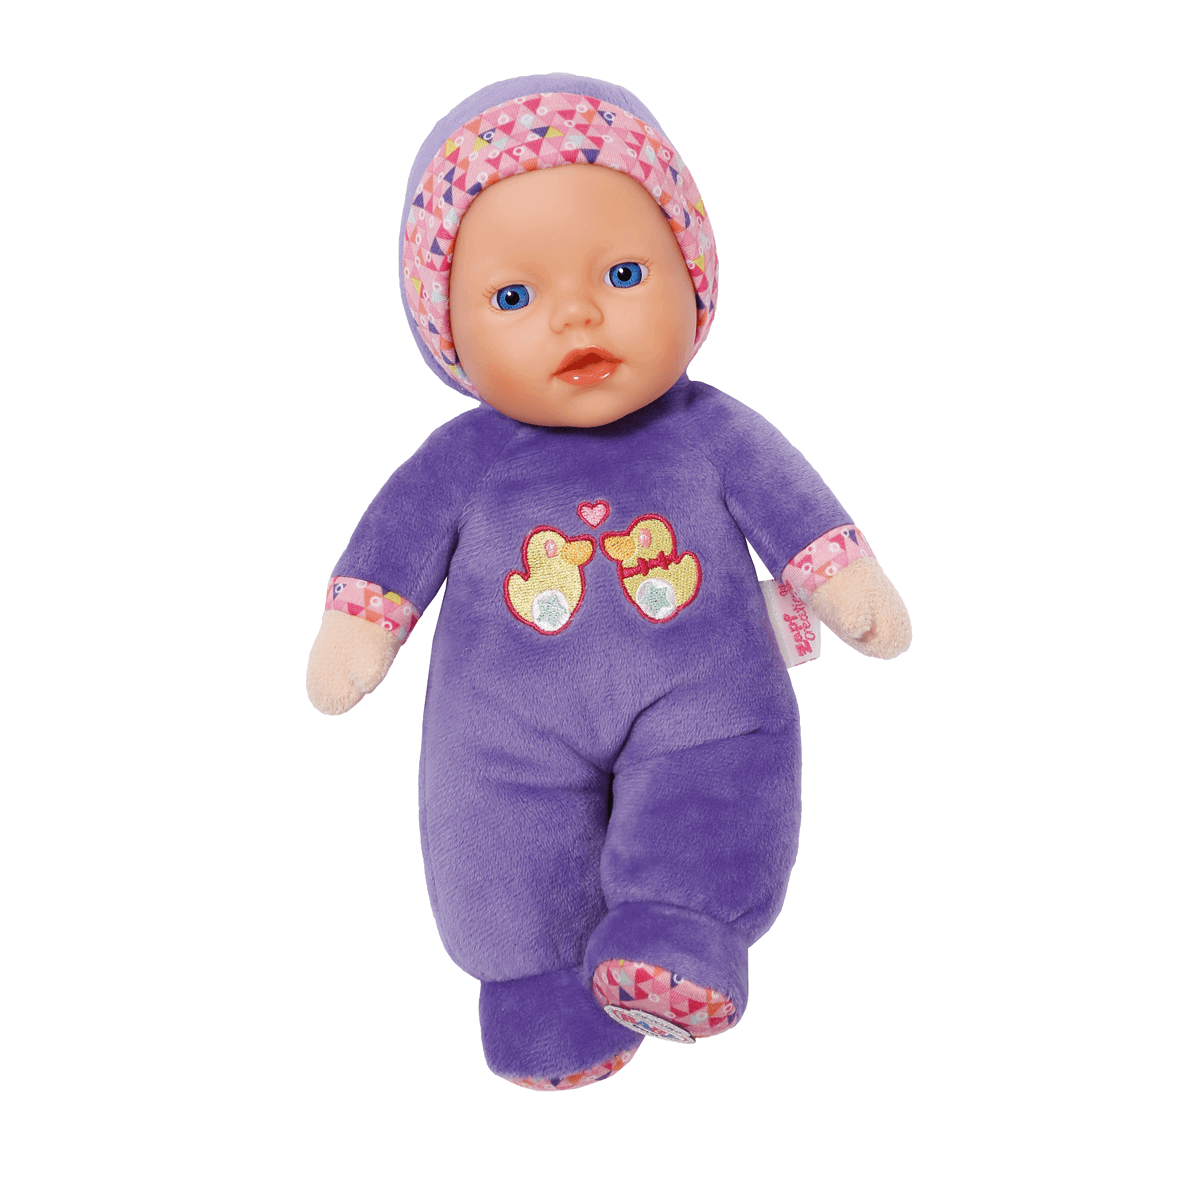 Baby Born Cutie for Baby - 26cm Doll